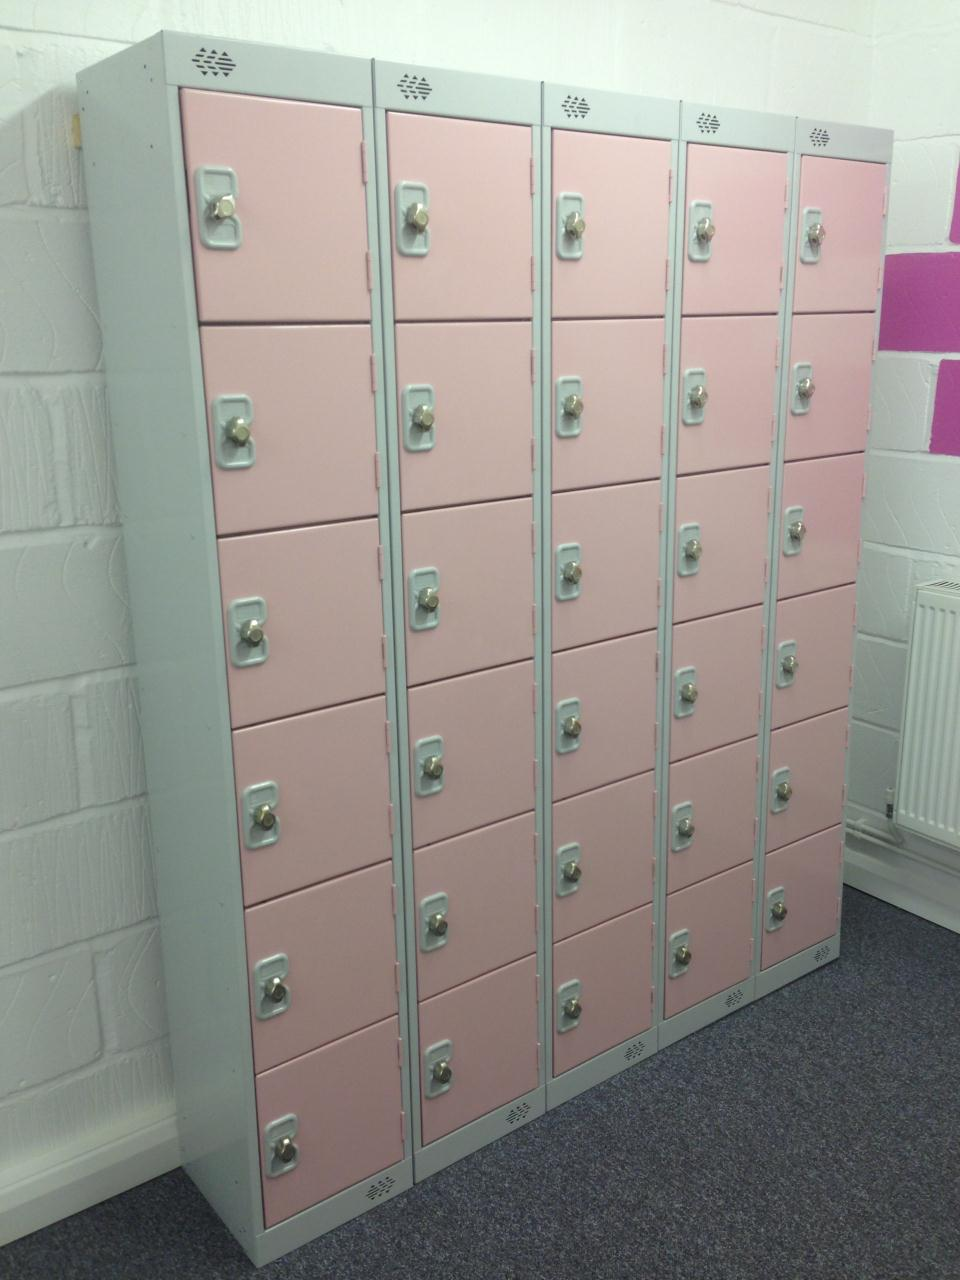 Tolworth Gymnastics Club Candy Pink Lockers